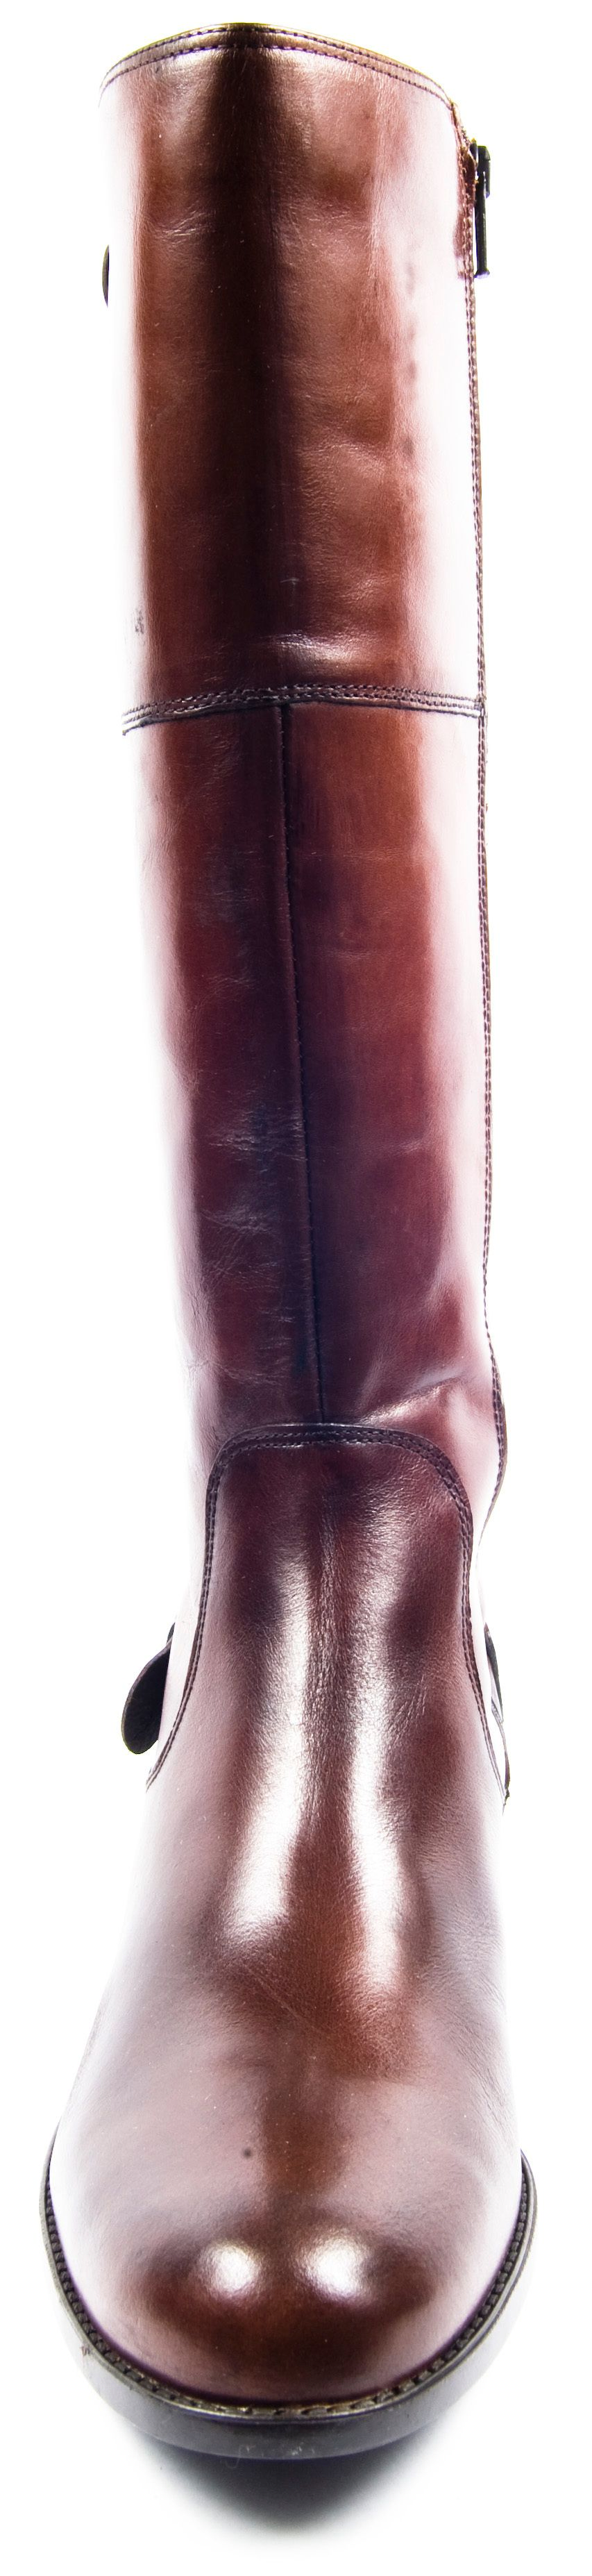 Paloma-s long boots